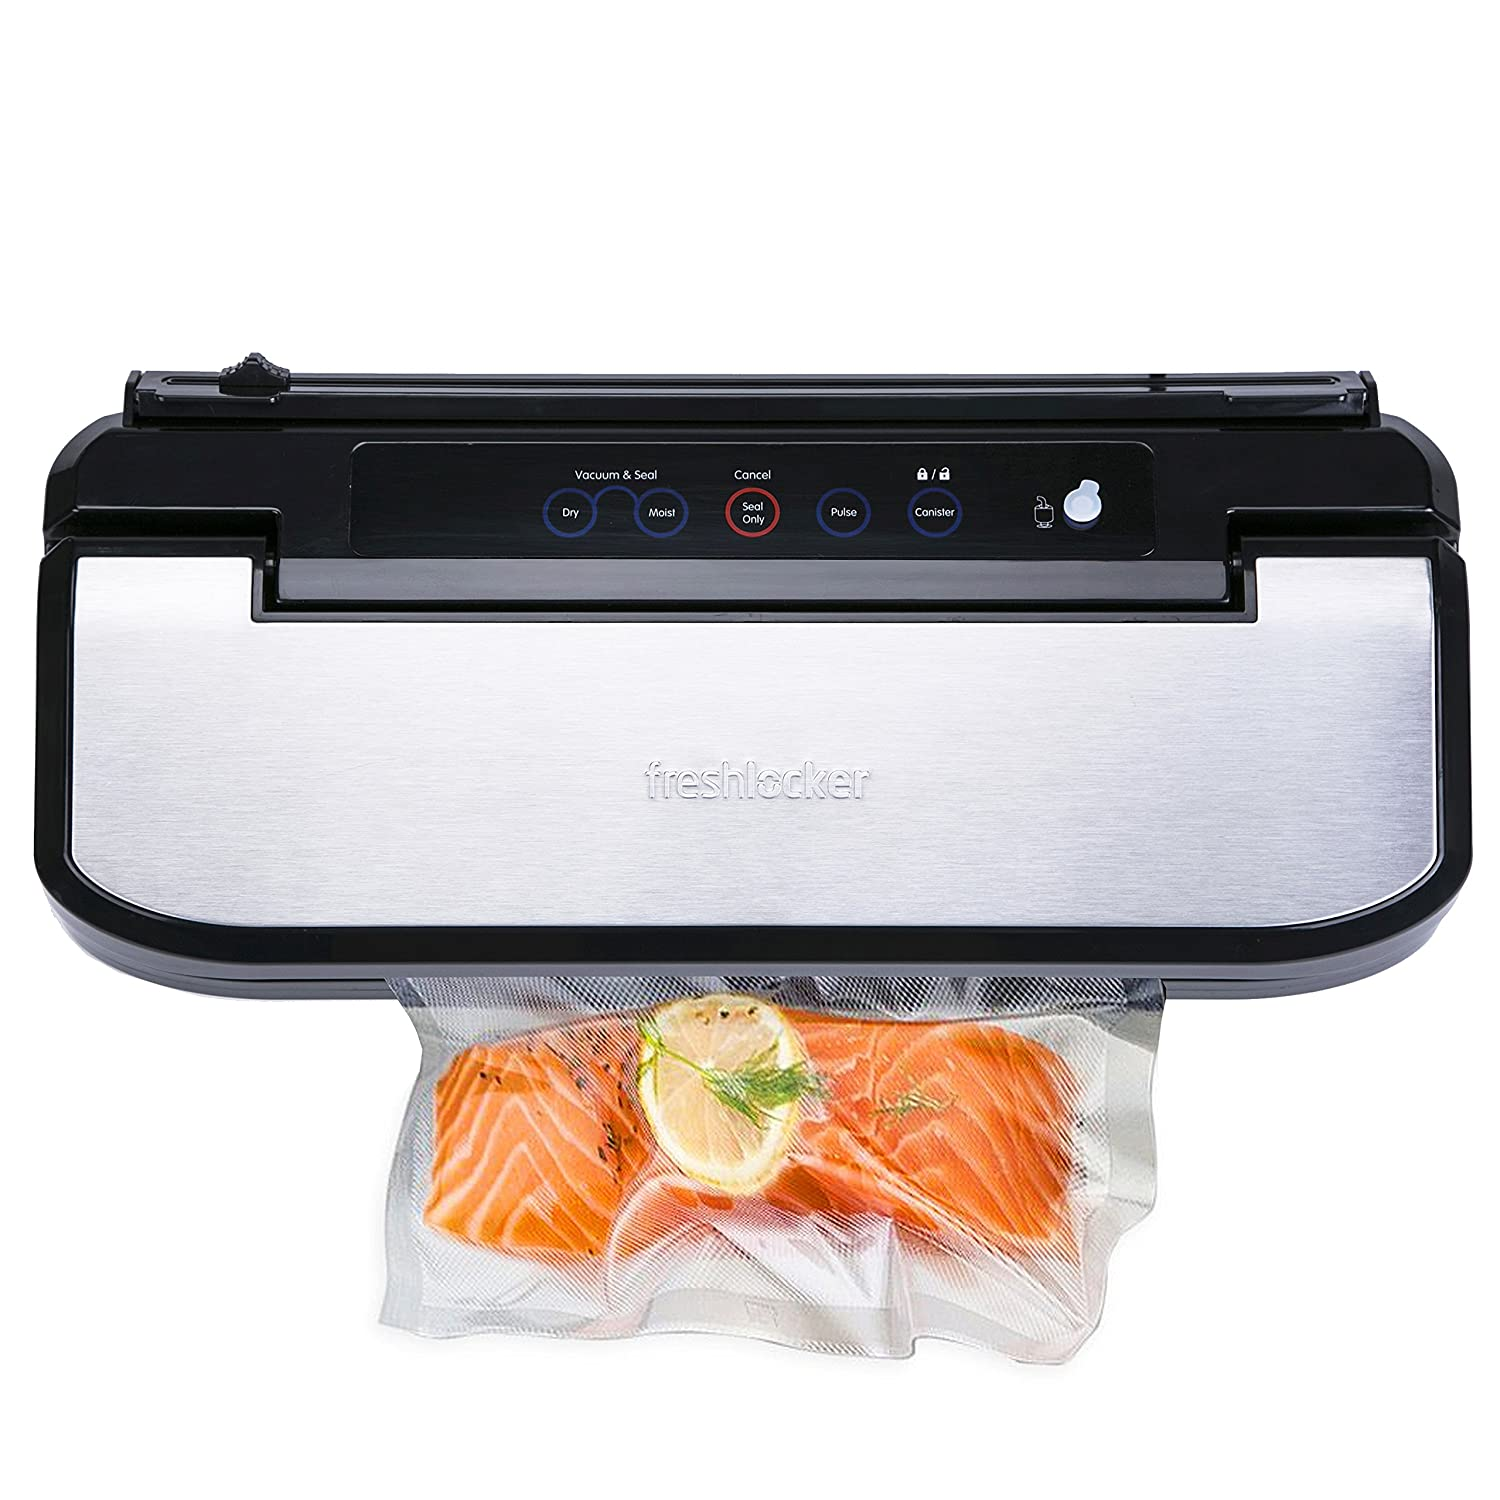 Freshlocker Vacuum Sealer ONLY...